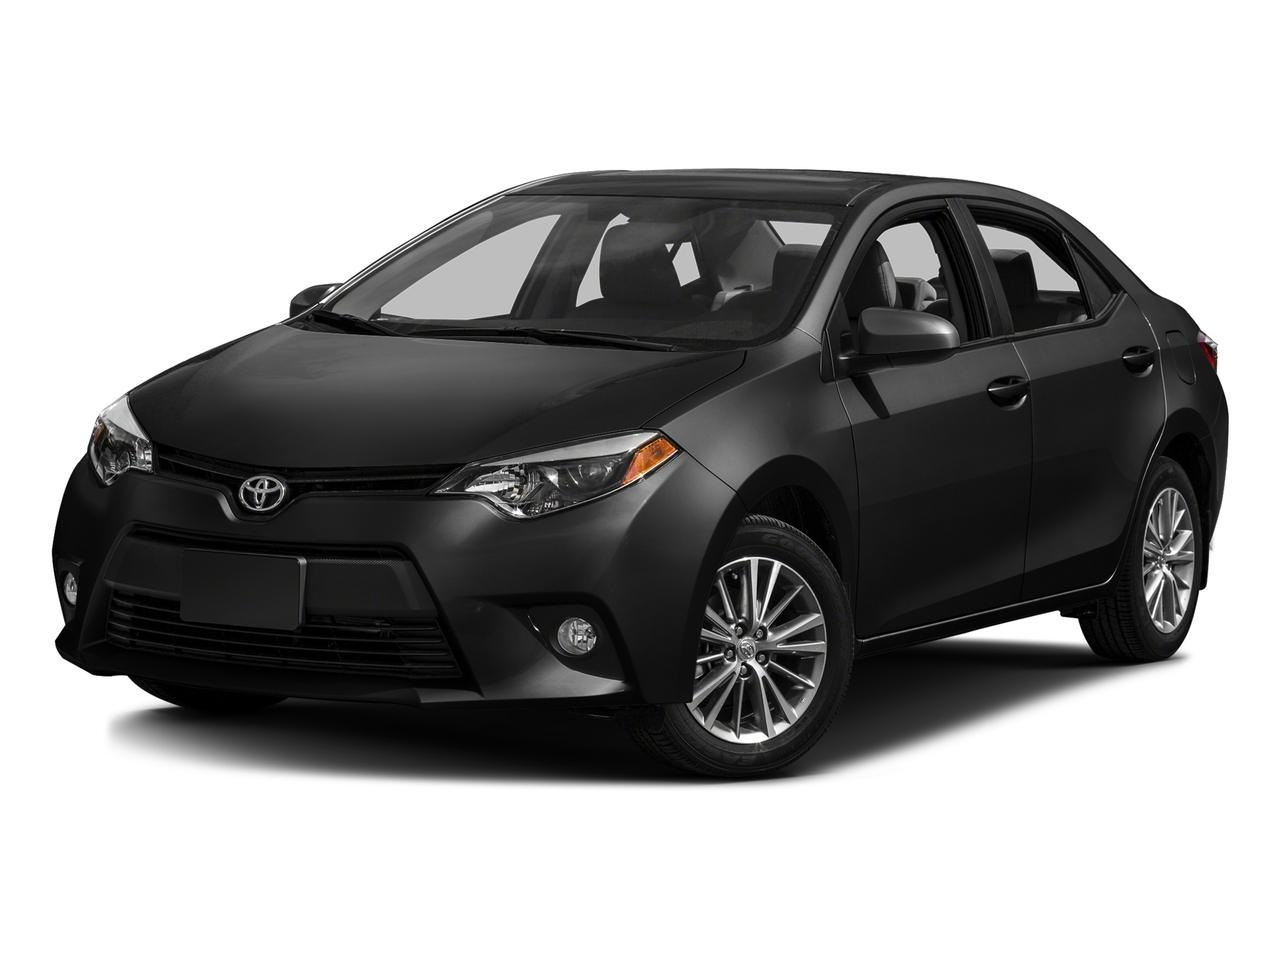 2016 Toyota Corolla Vehicle Photo in Streetsboro, OH 44241